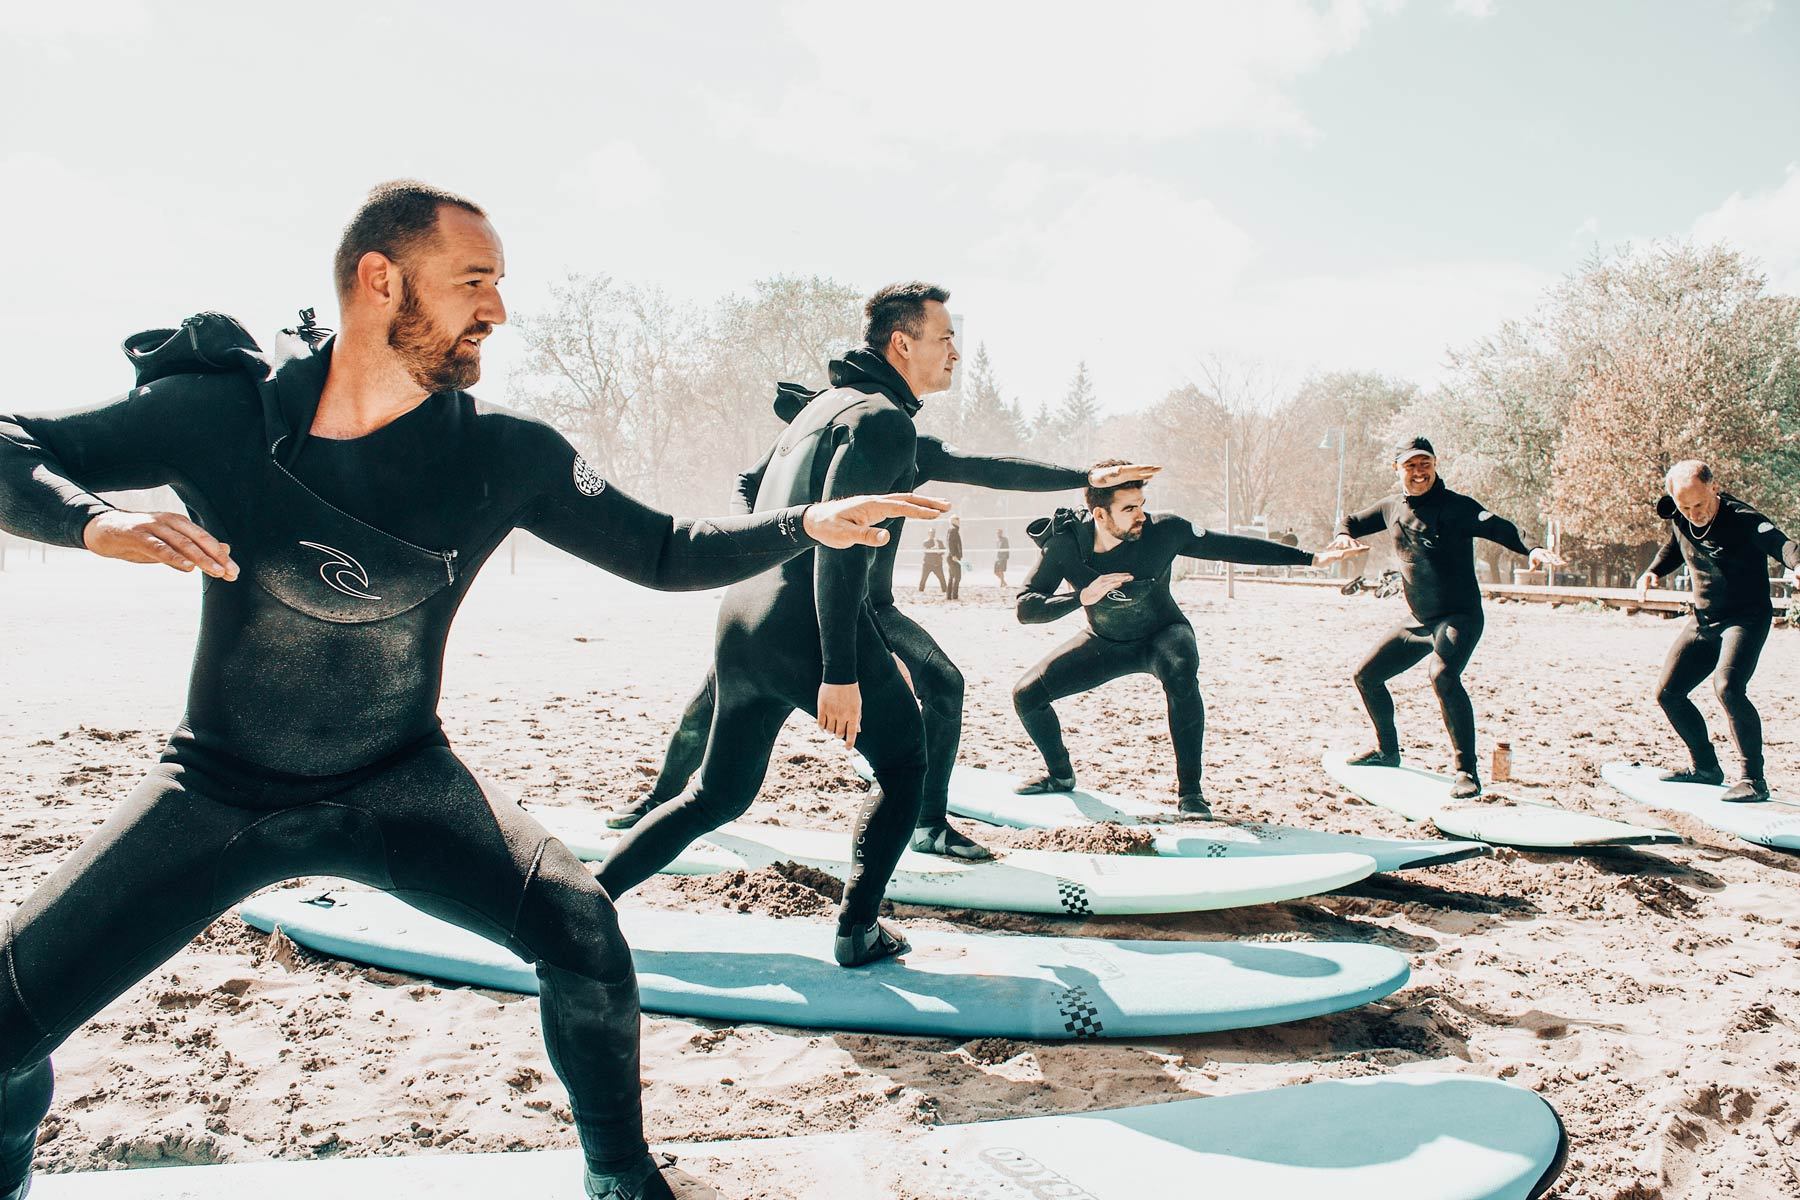 Learn to surf on the Great Lakes Surf in Toronto Surf School